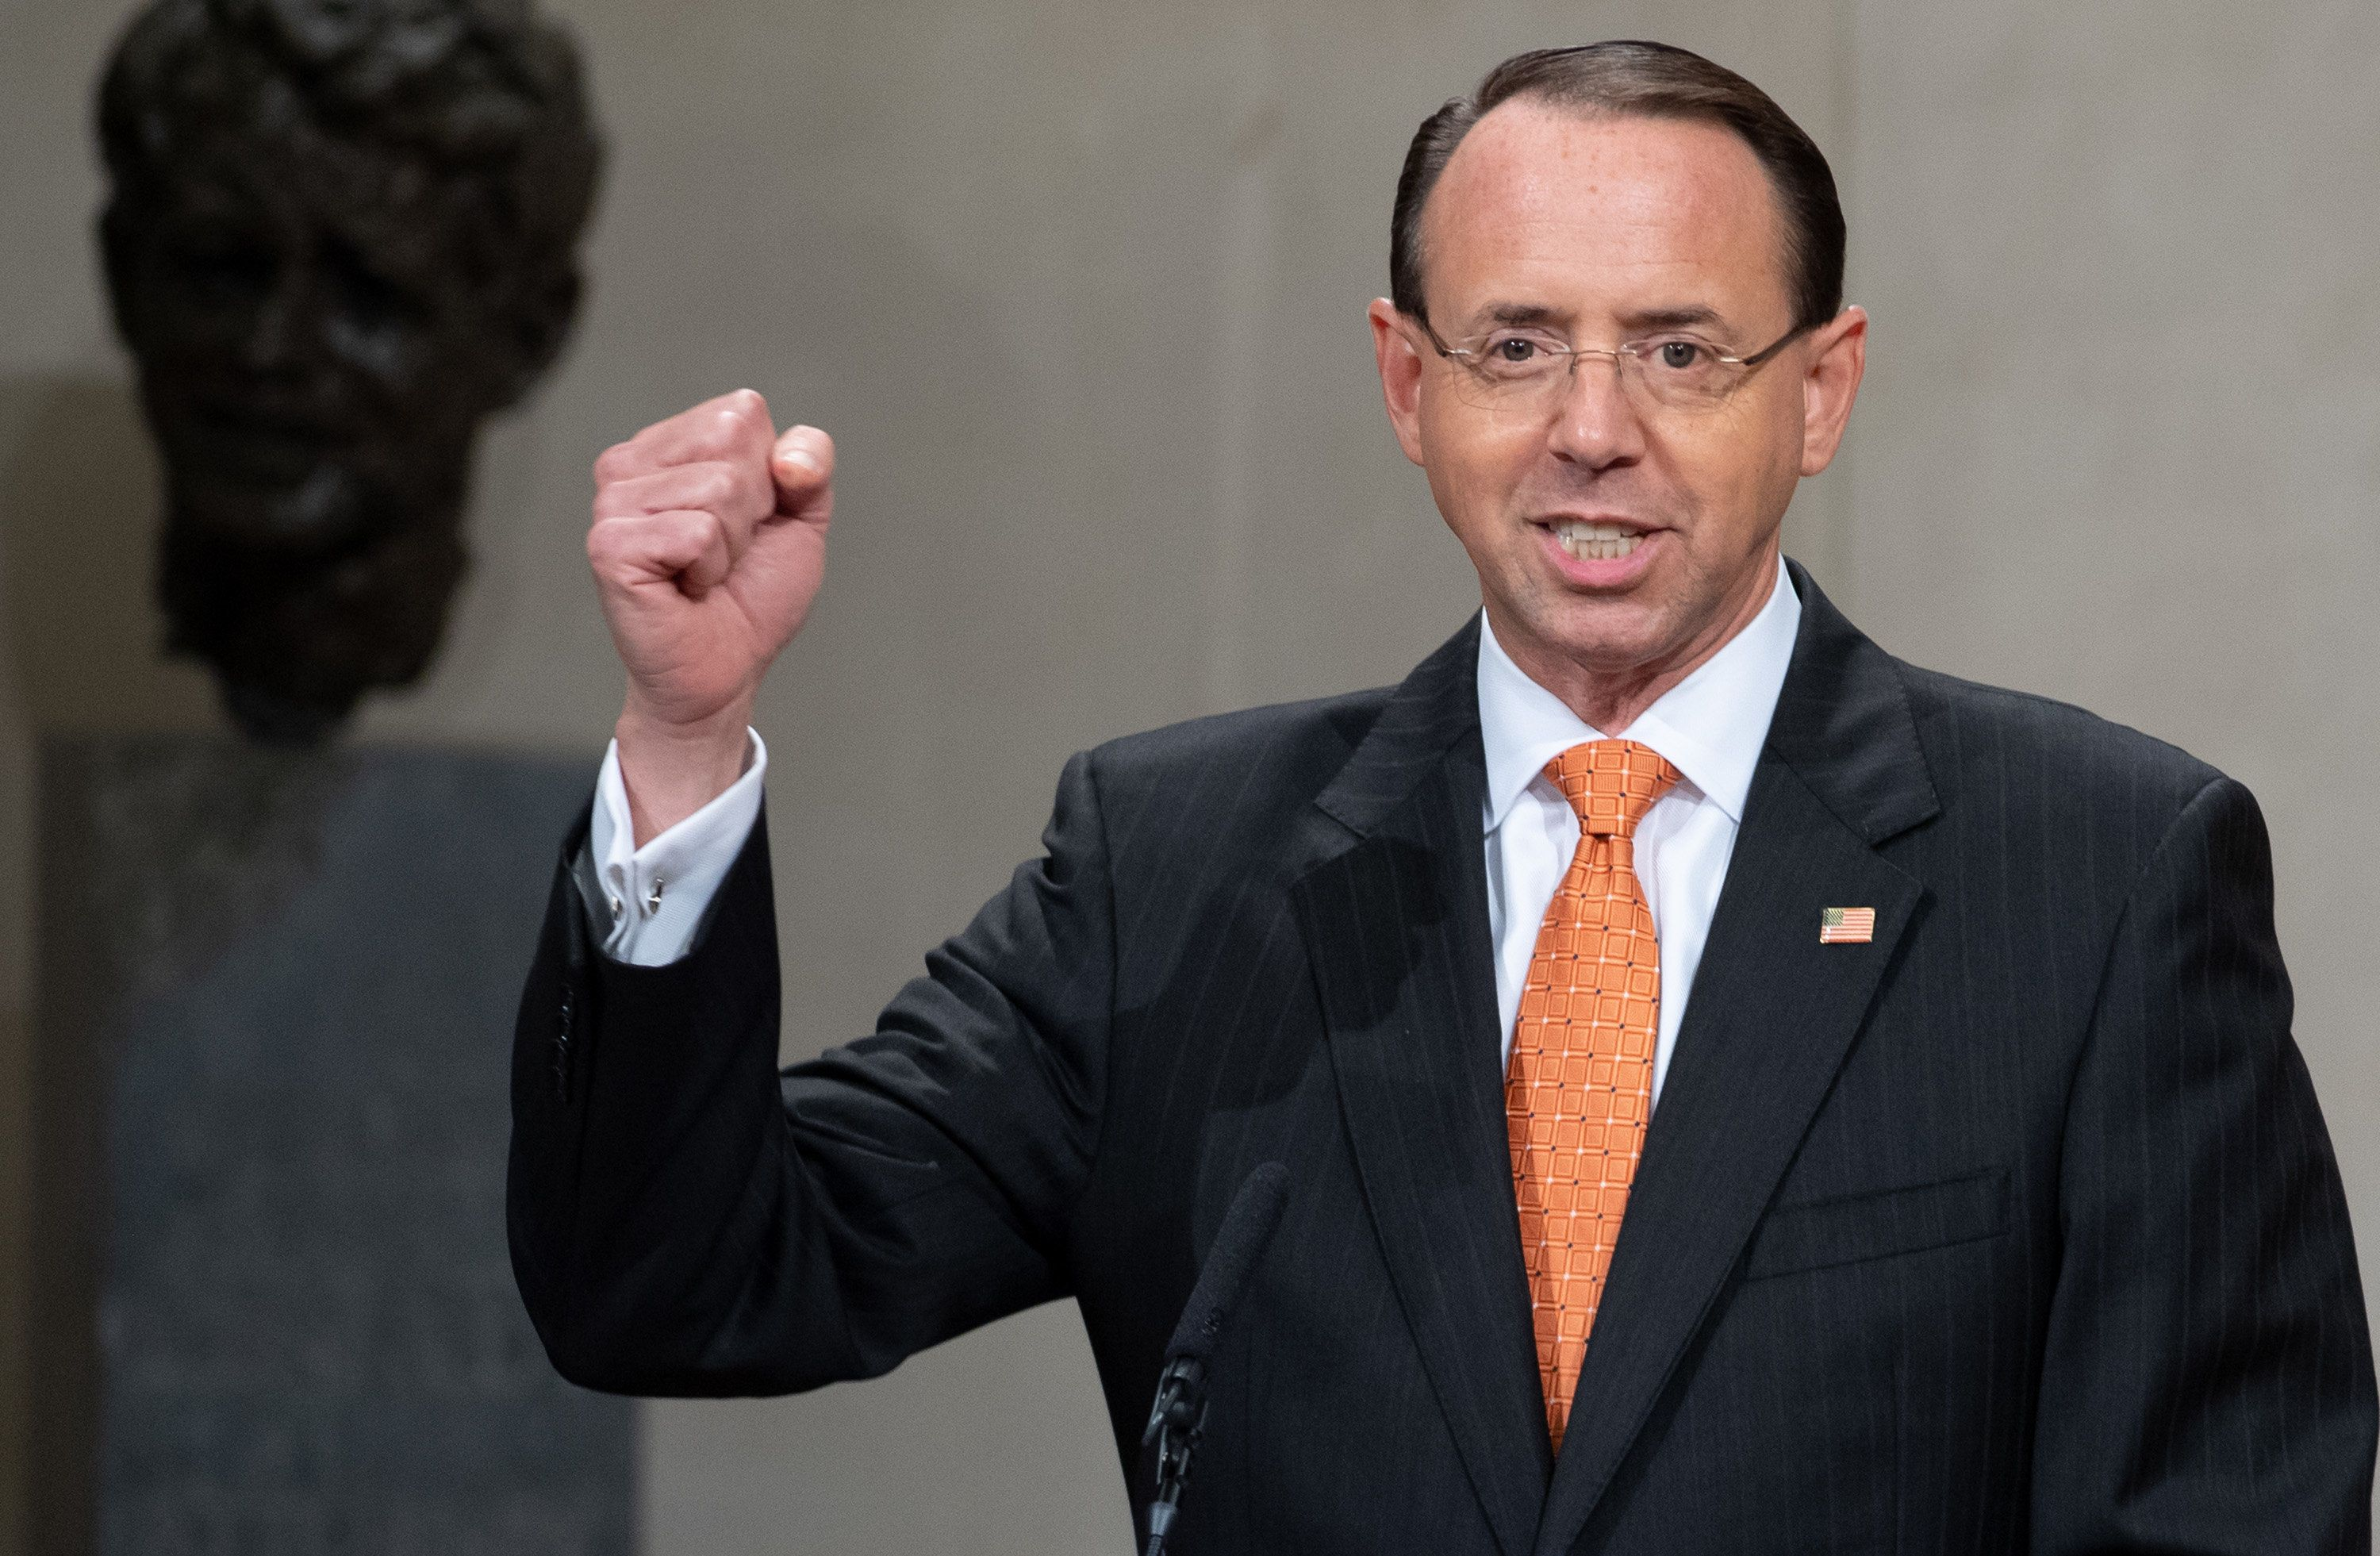 US Deputy Attorney General Rod Rosenstein speaks during the Second Annual Attorney General's Award for Distinguished Service in Policing at the Department of Justice in Washington, DC, September 18, 2018. (Photo by SAUL LOEB / AFP)        (Photo credit should read SAUL LOEB/AFP/Getty Images)